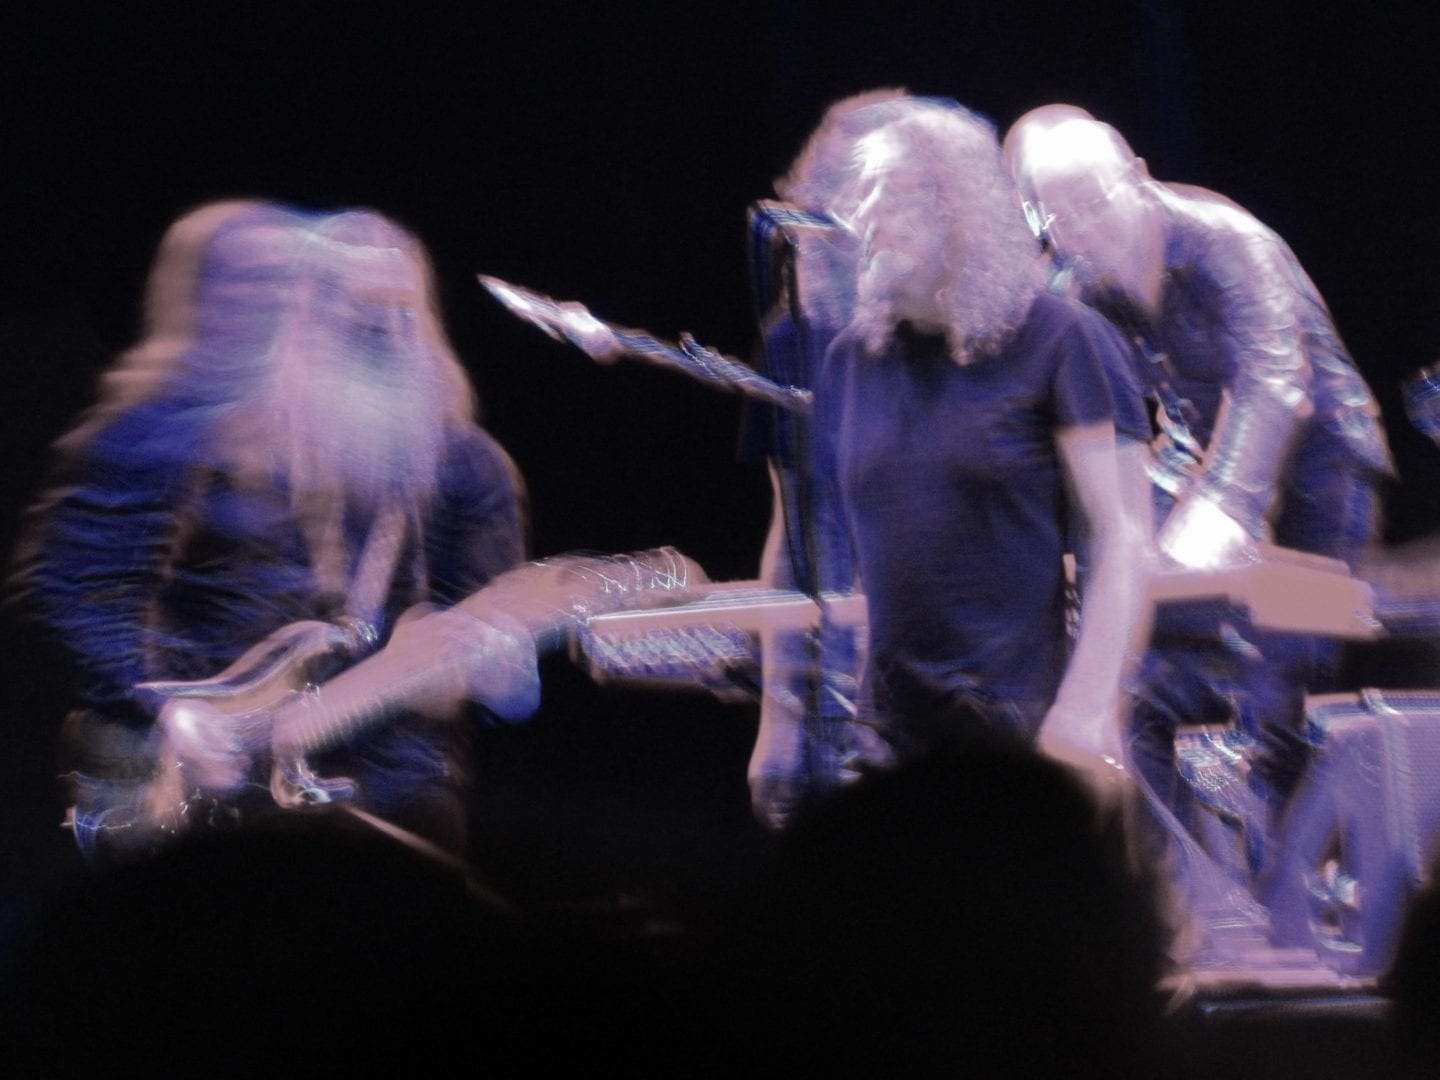 A blurry image of Robert Plant